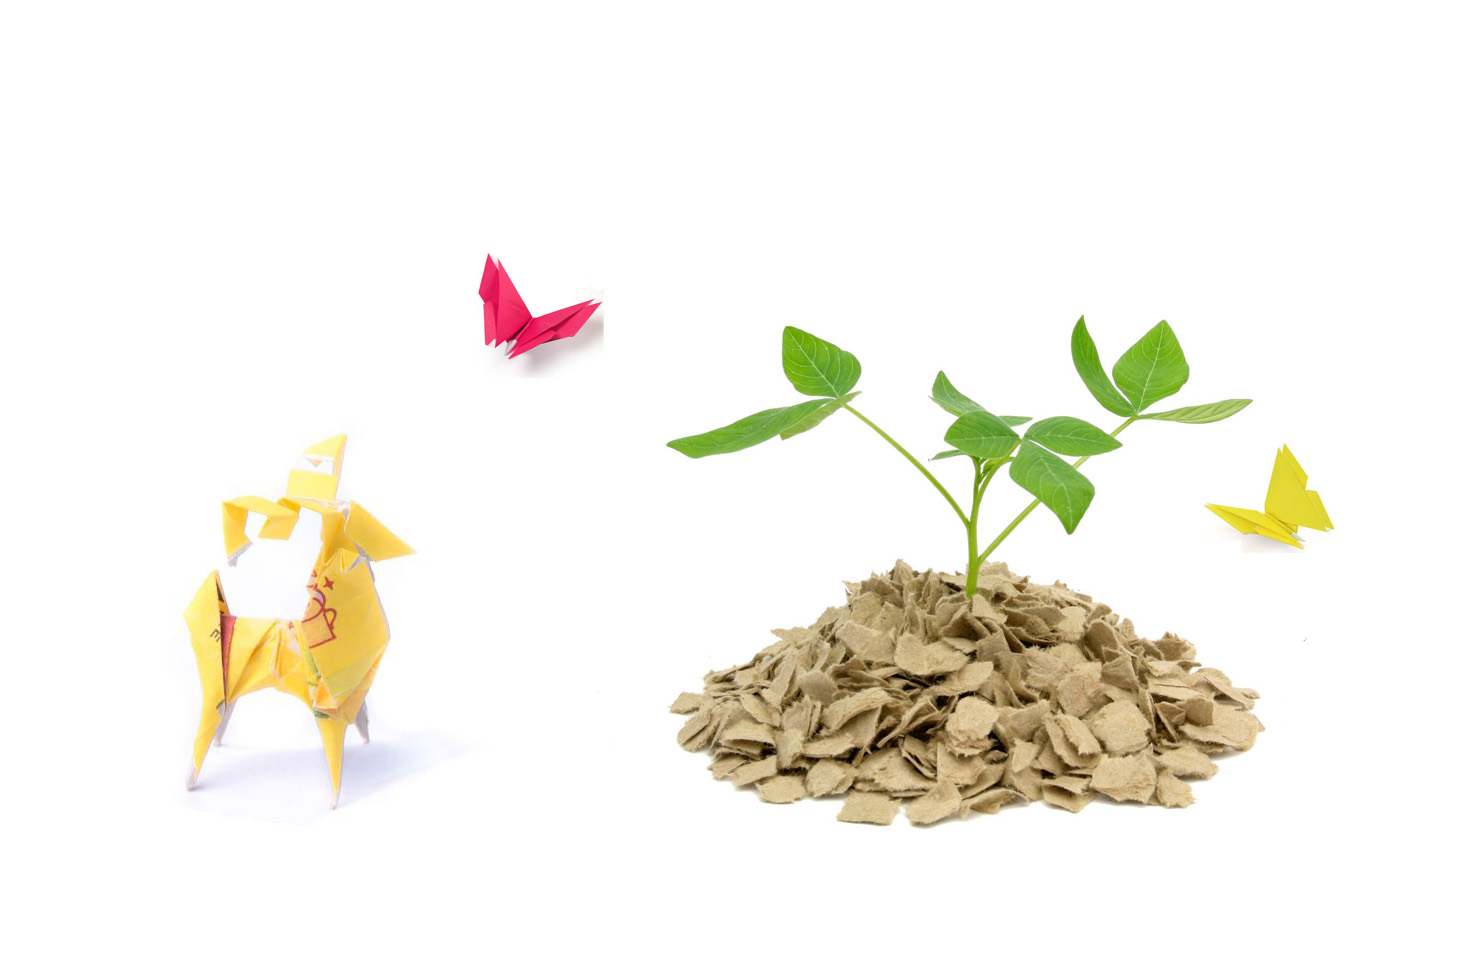 Parting with Paper is our 4th installment of this 4 part series on creating eco-heros.